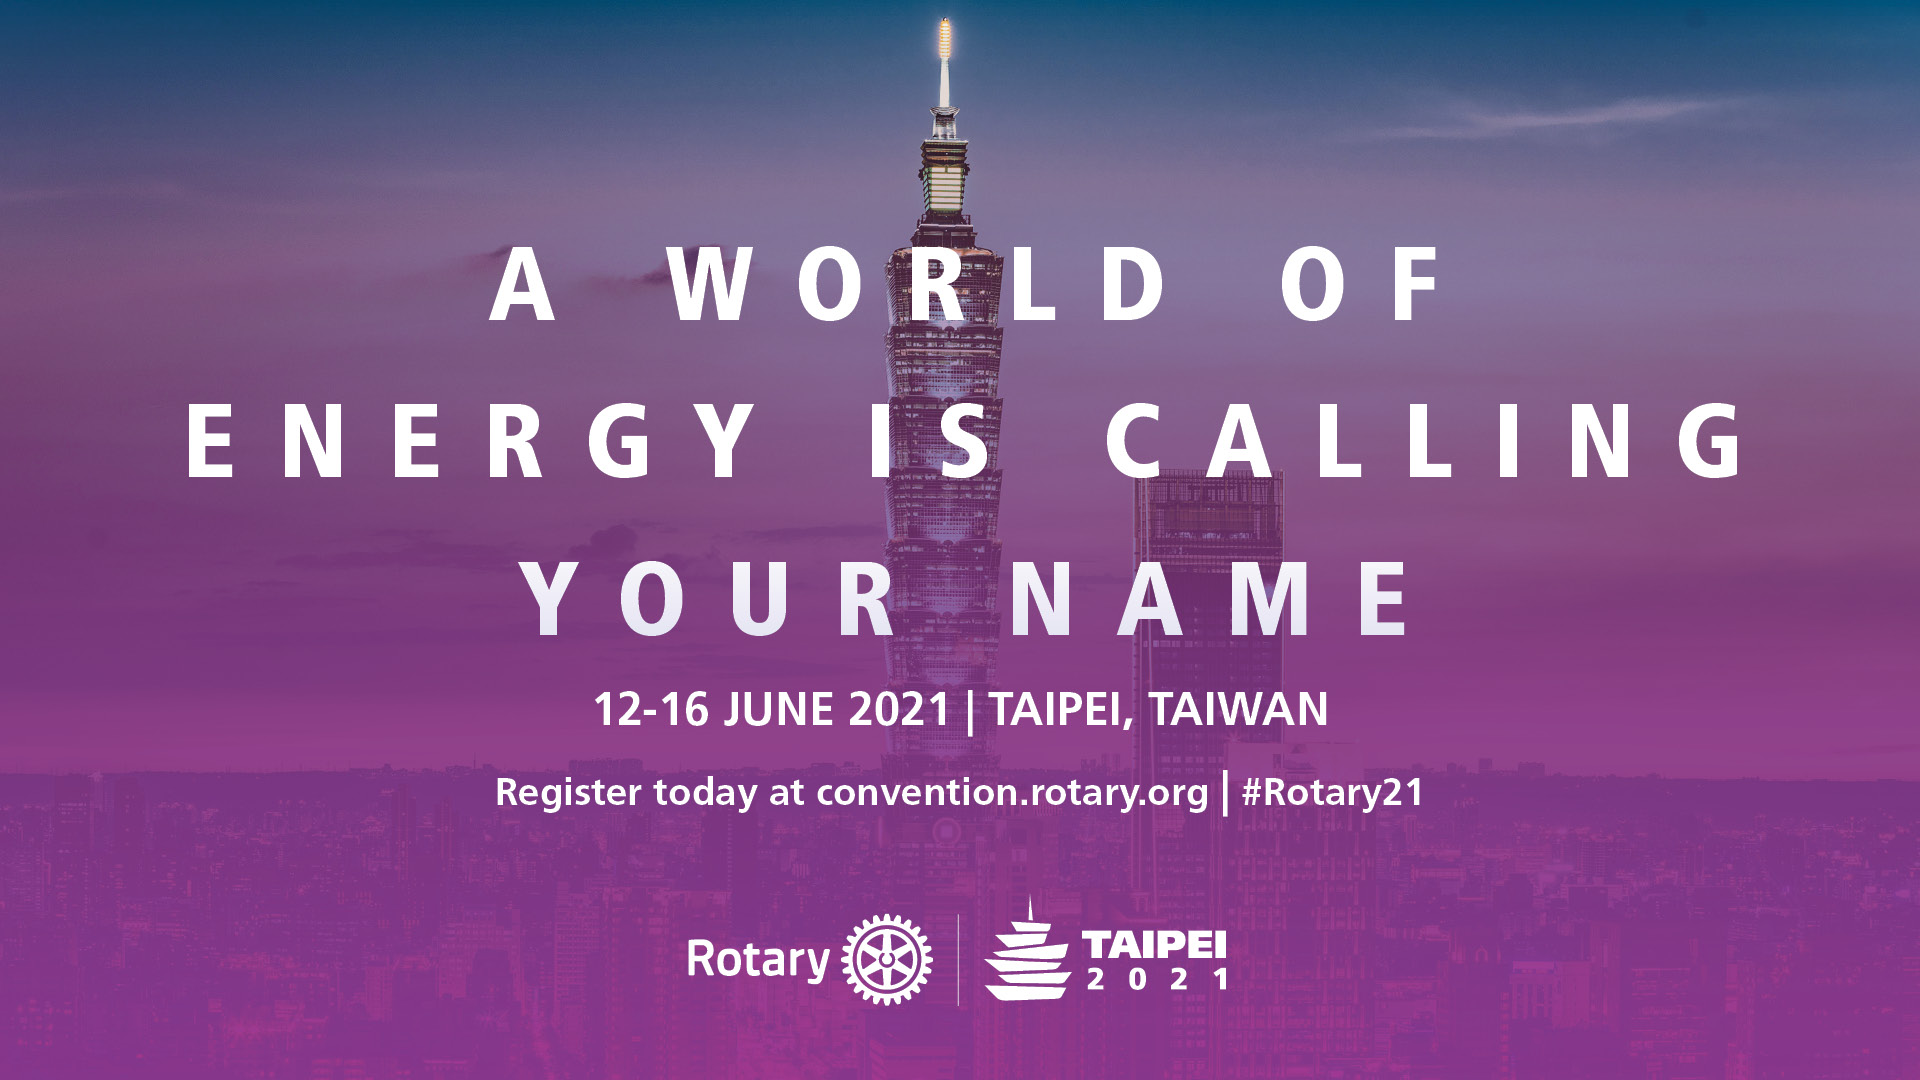 The Rotary Convention